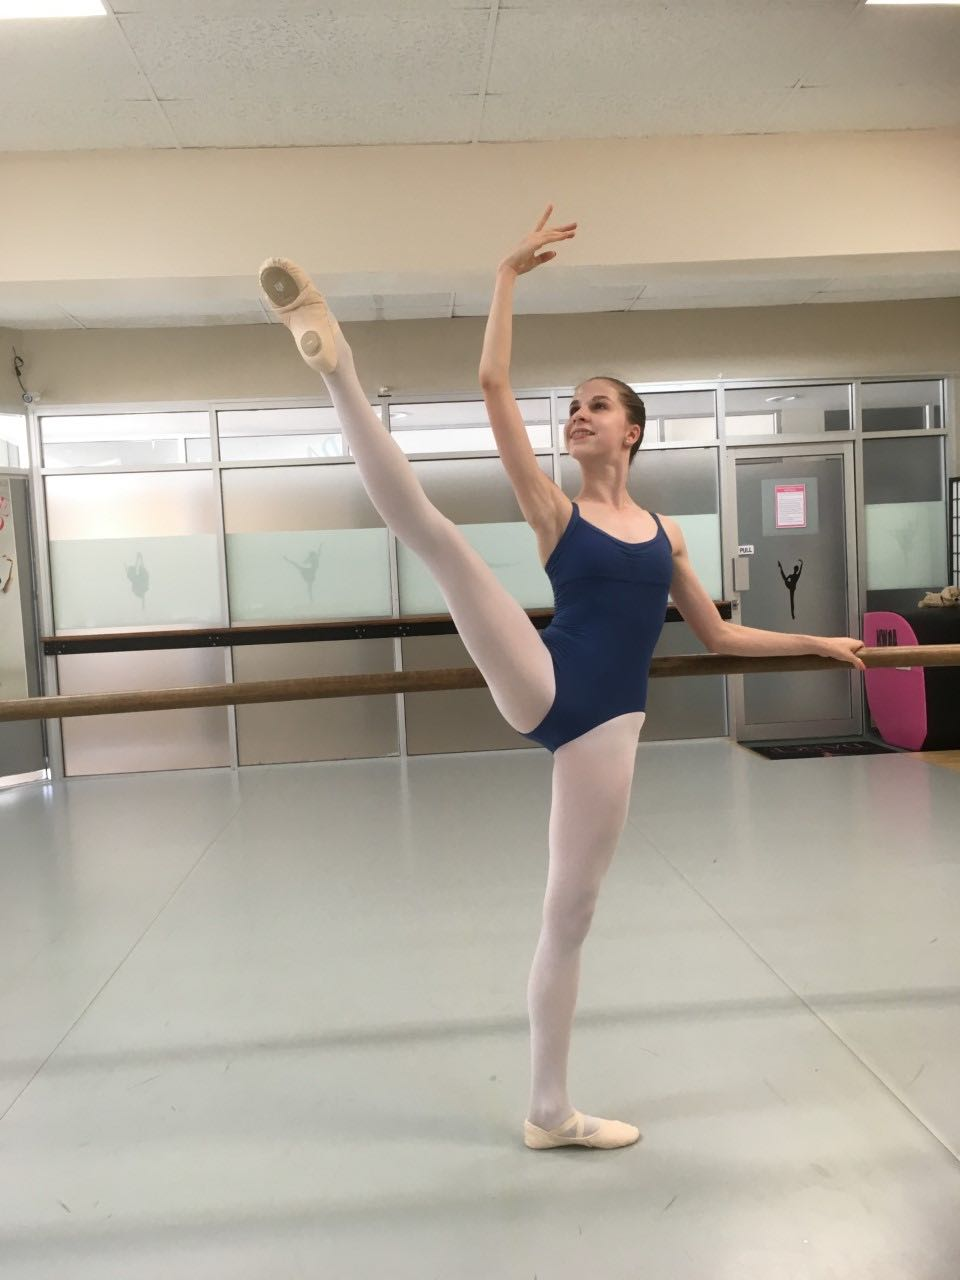 amy, wearing mdm antares leotard and intrinsic reflex ballet shoes